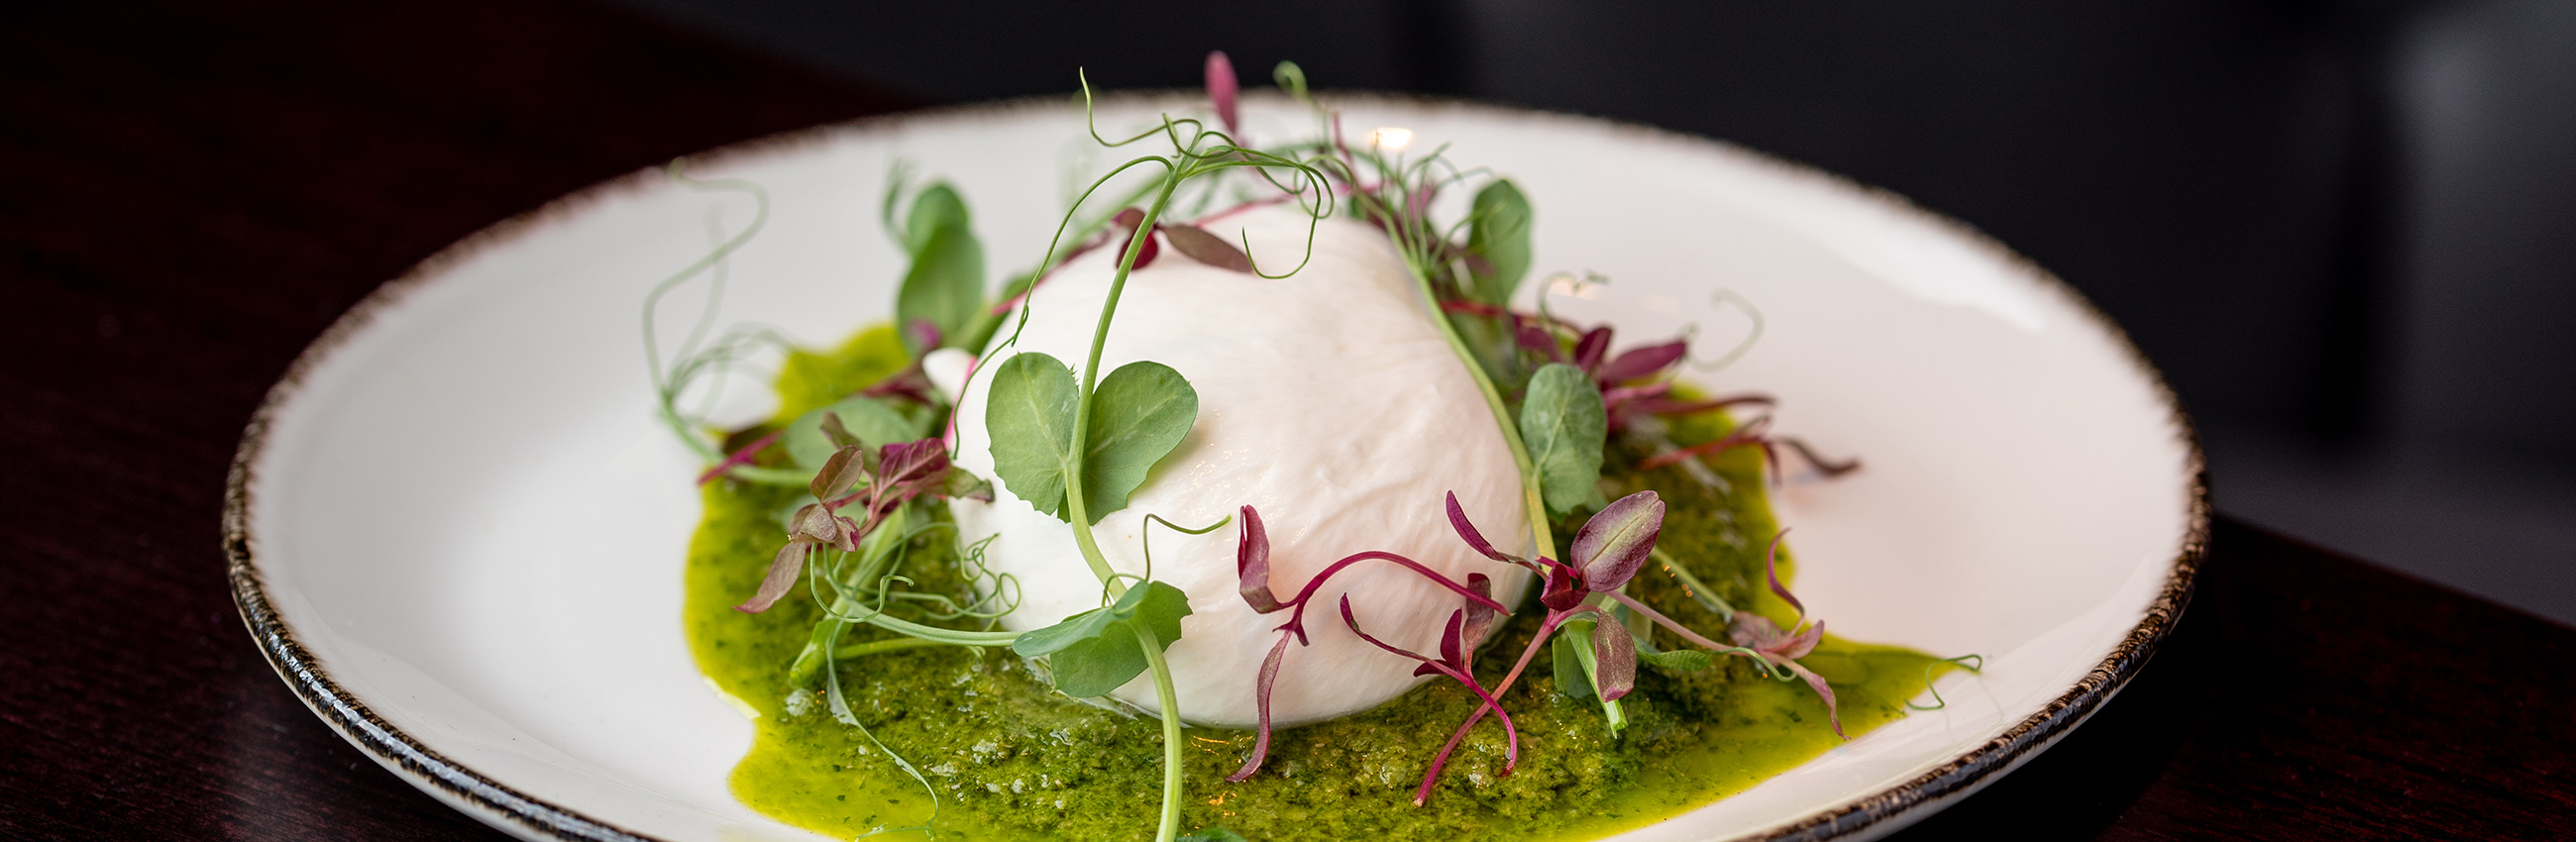 Copper House Bar Berkhamsted – Burrata